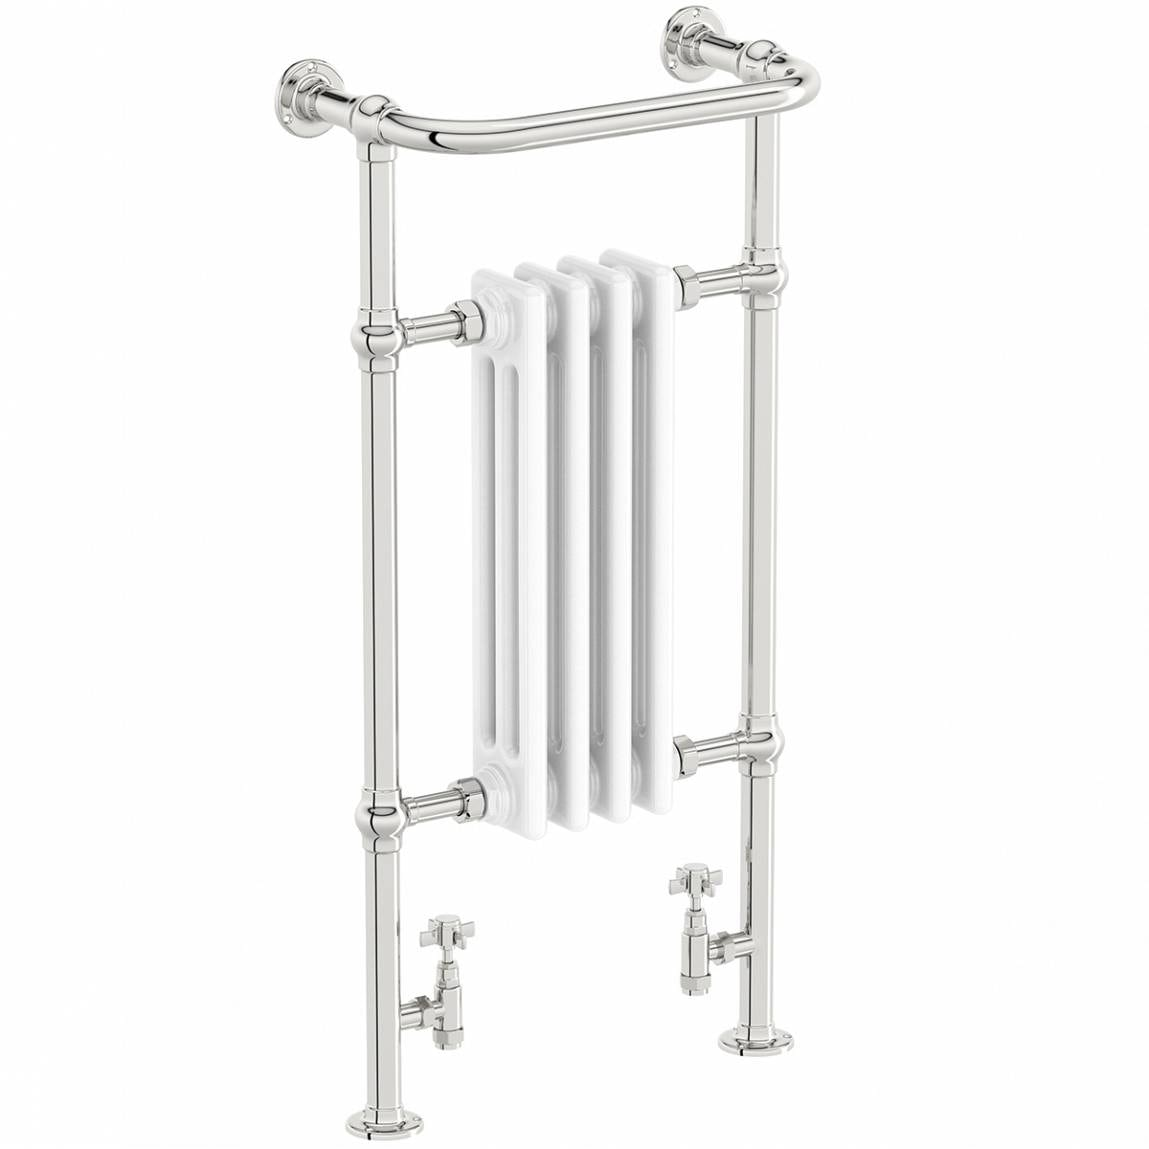 The Bath Co. Dulwich radiator 952 x 479